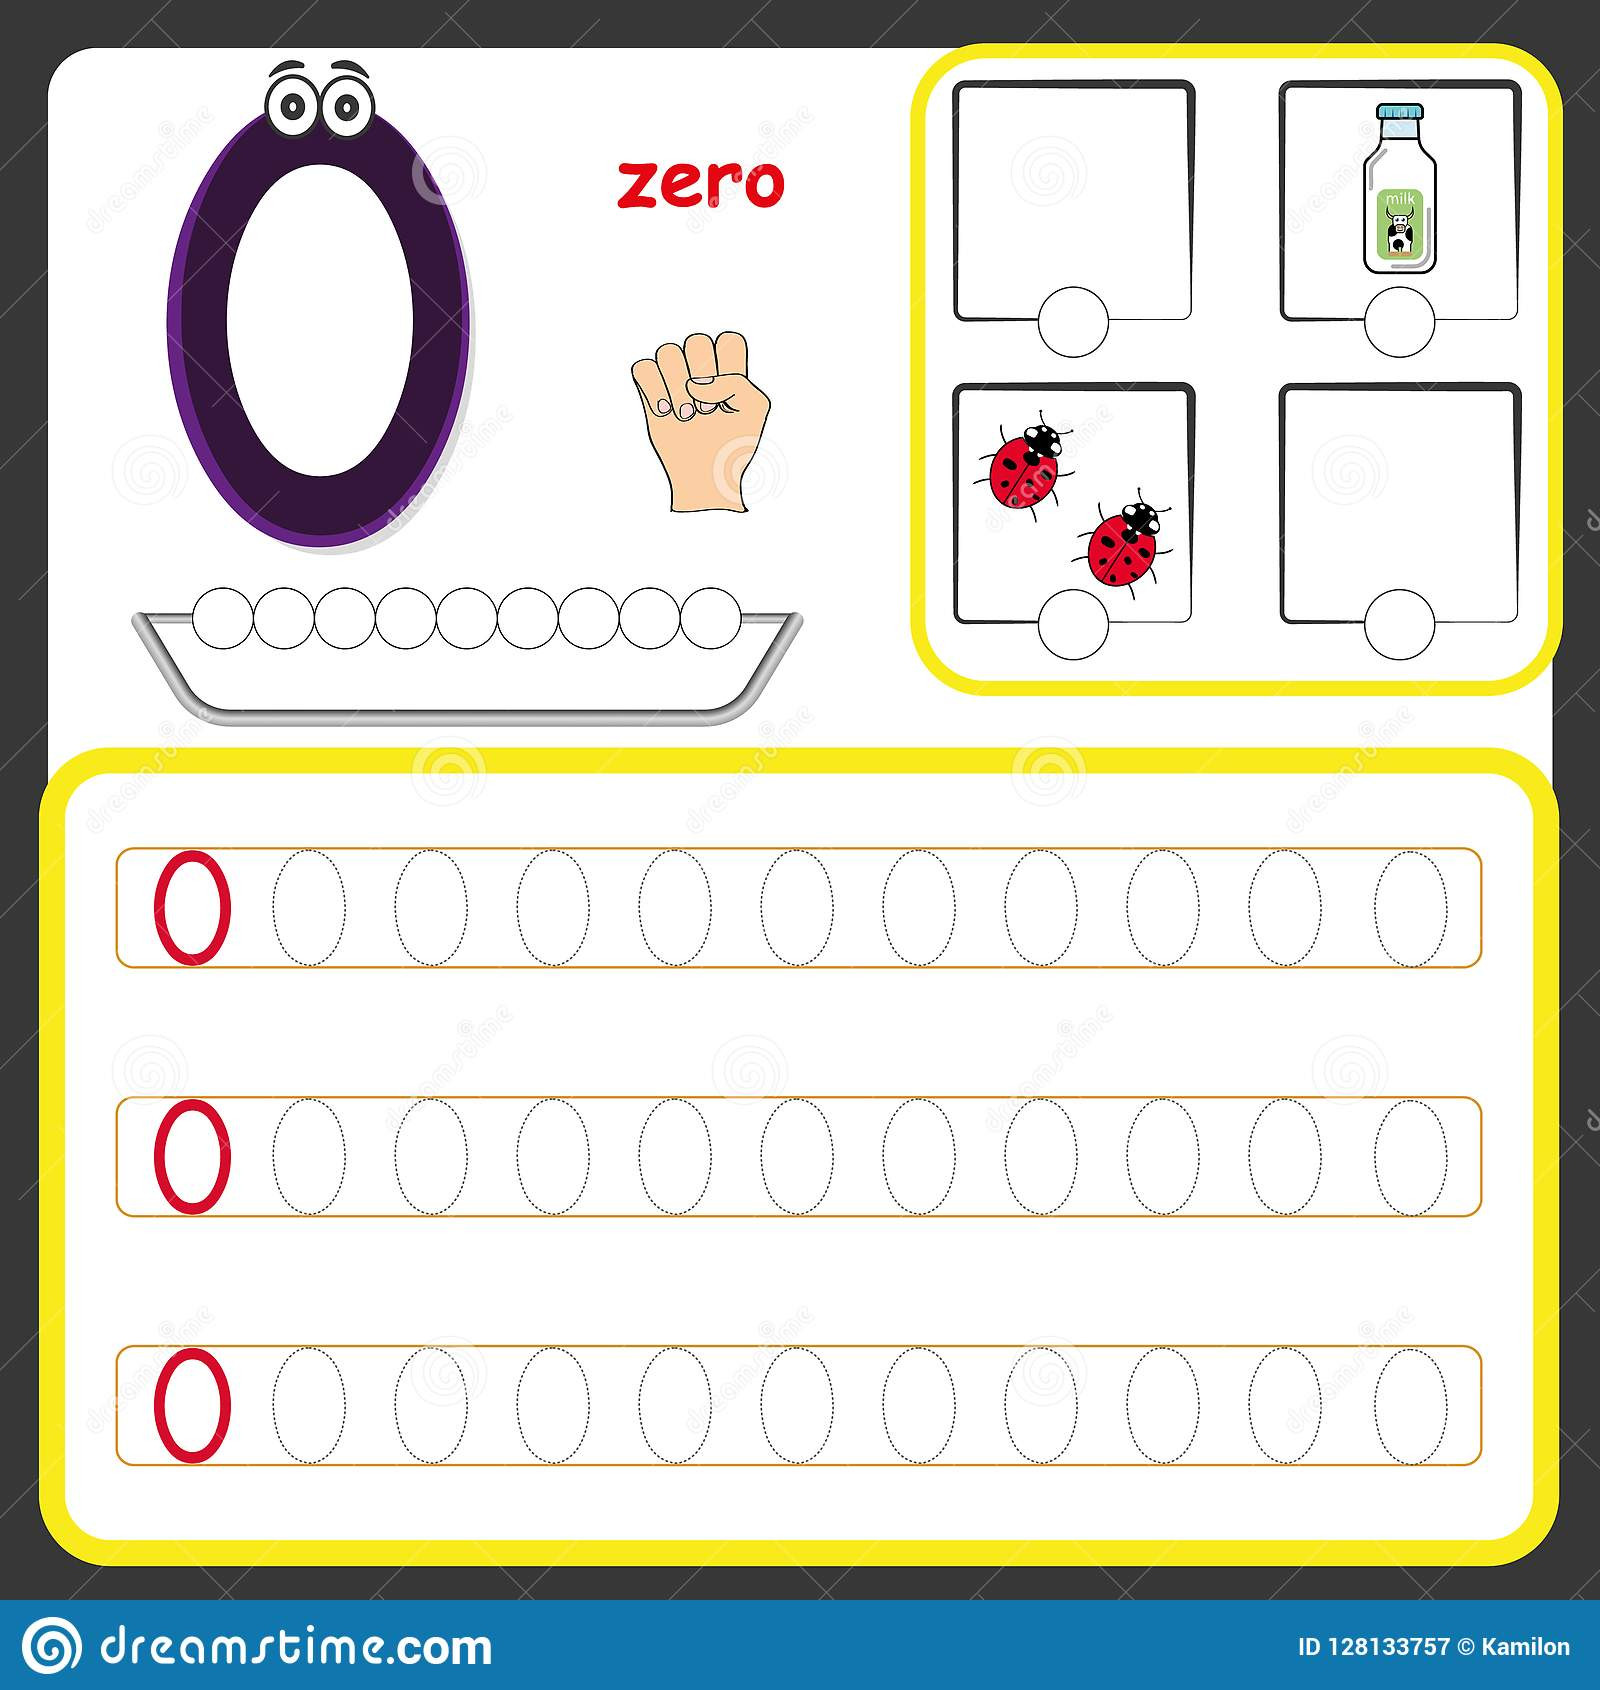 Counting Worksheets Preschool Number Cards Counting and Writing Numbers Learning Numbers